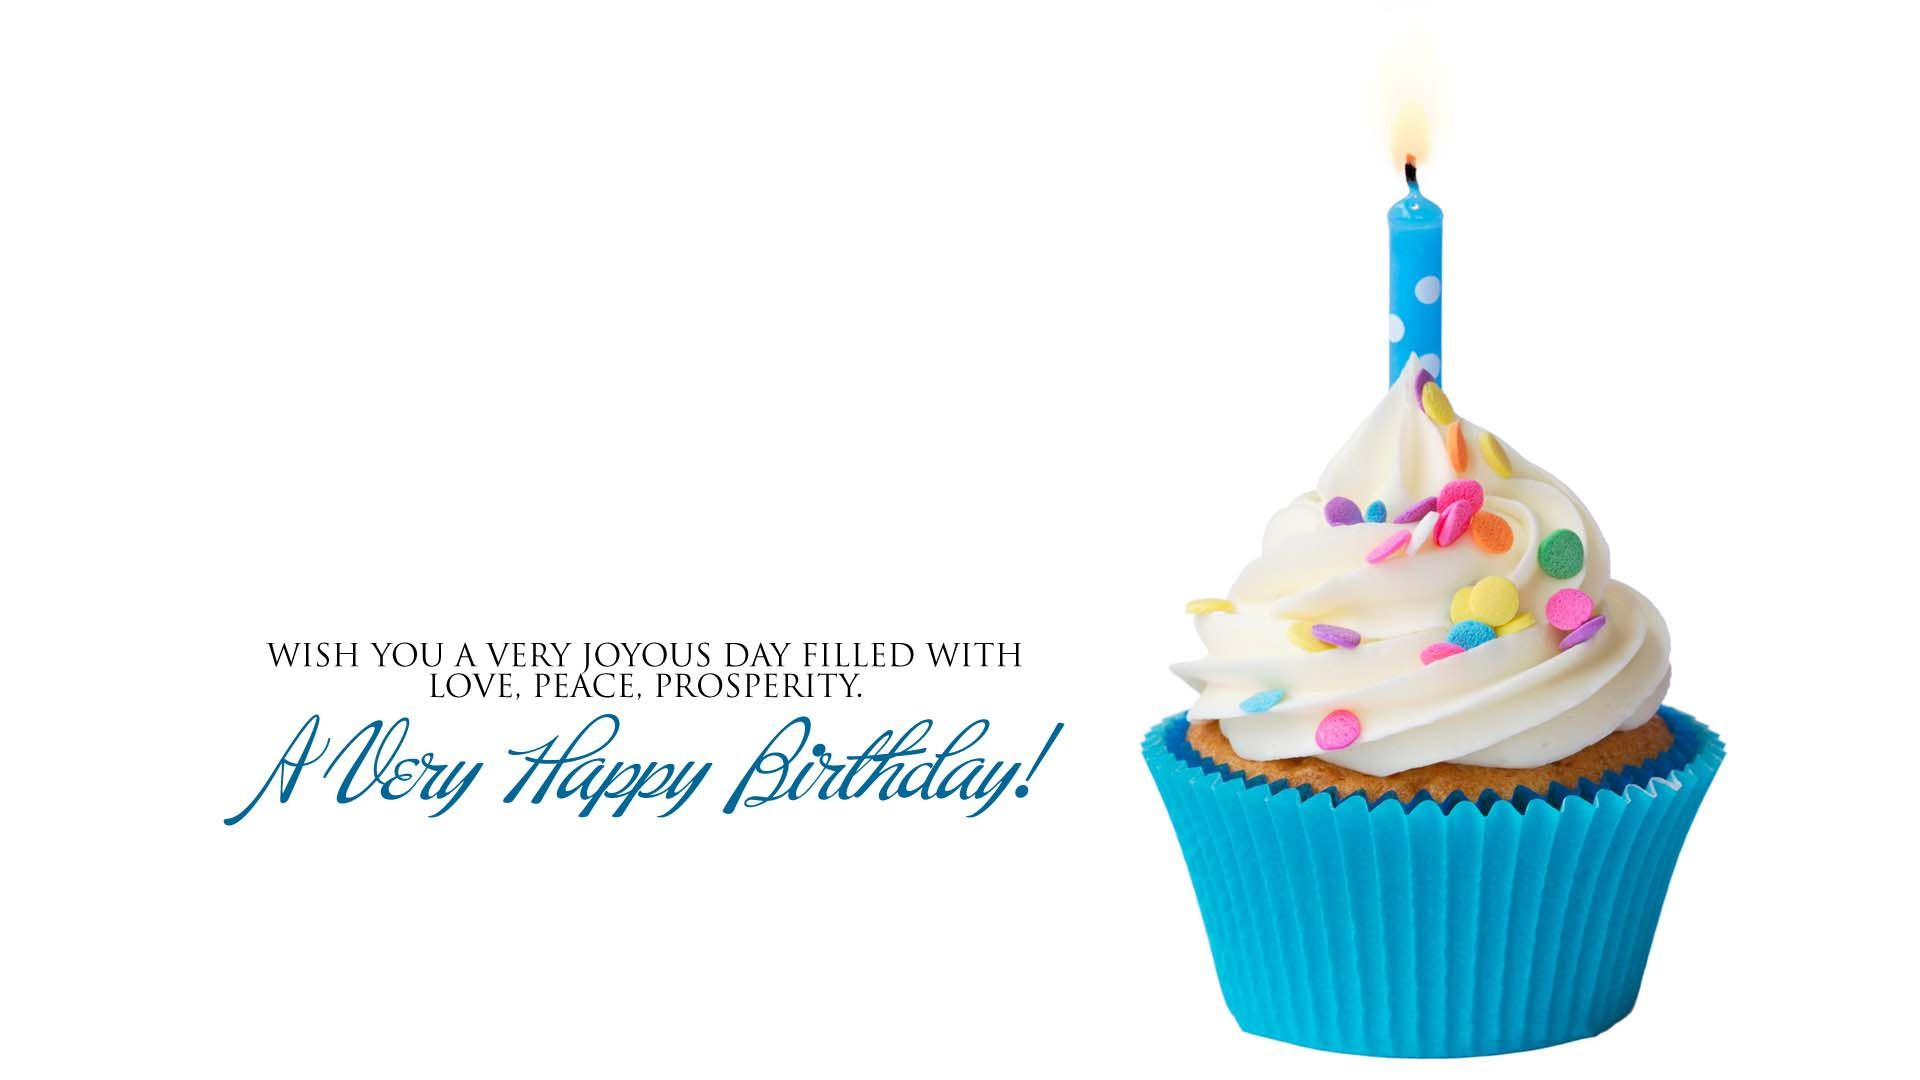 desktop birthday wallpaper ; blue_birthday_cake_with_candle